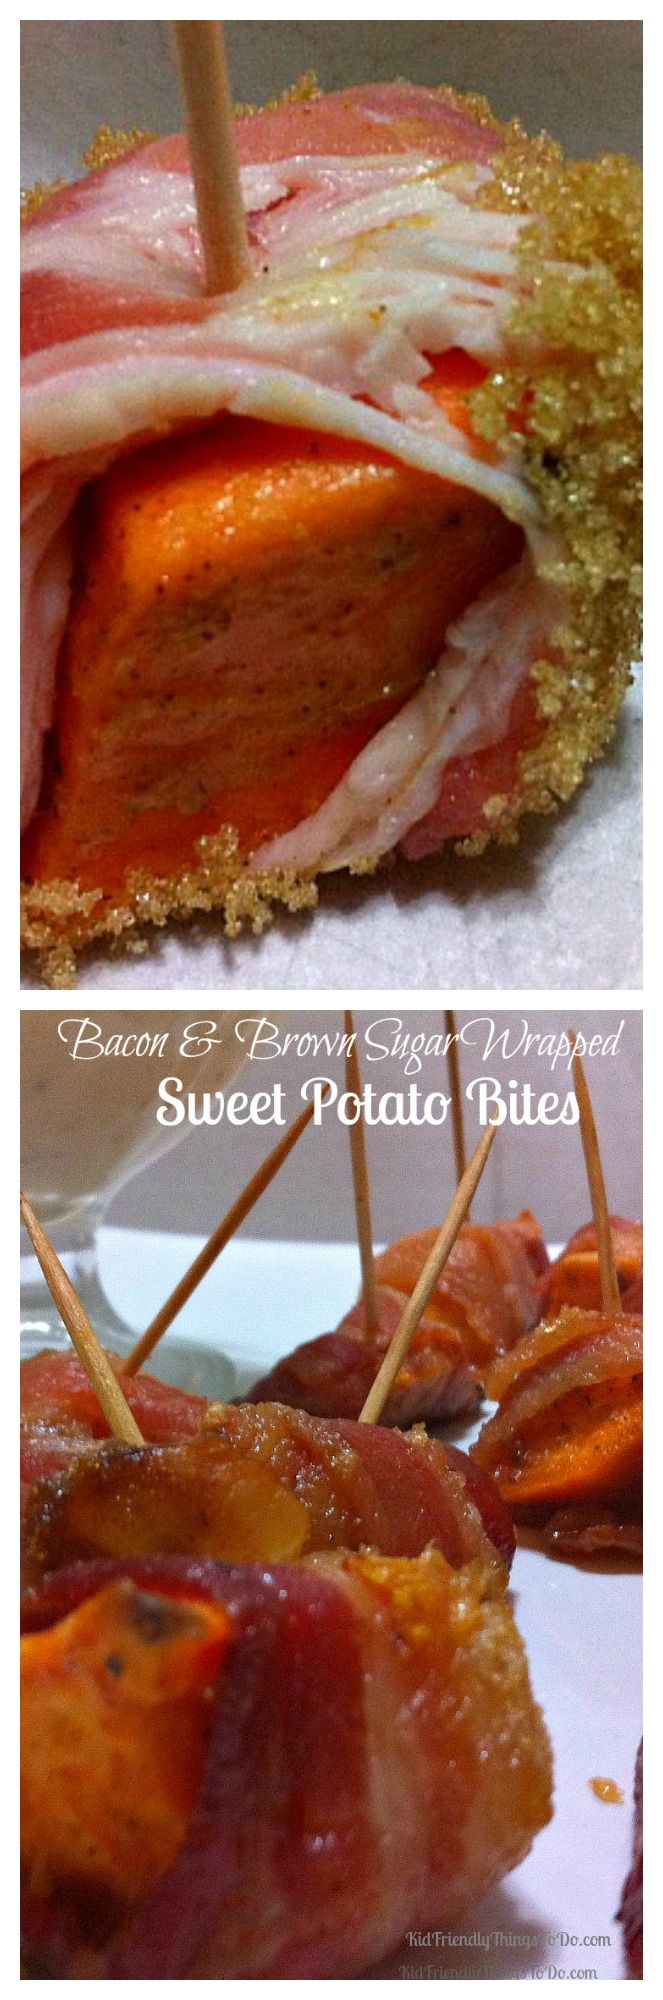 What a winning combination! Sweet Potatoes with Brown Sugar and Bacon! A perfect holiday appetizer. KidFriendlyThingsToDo.com